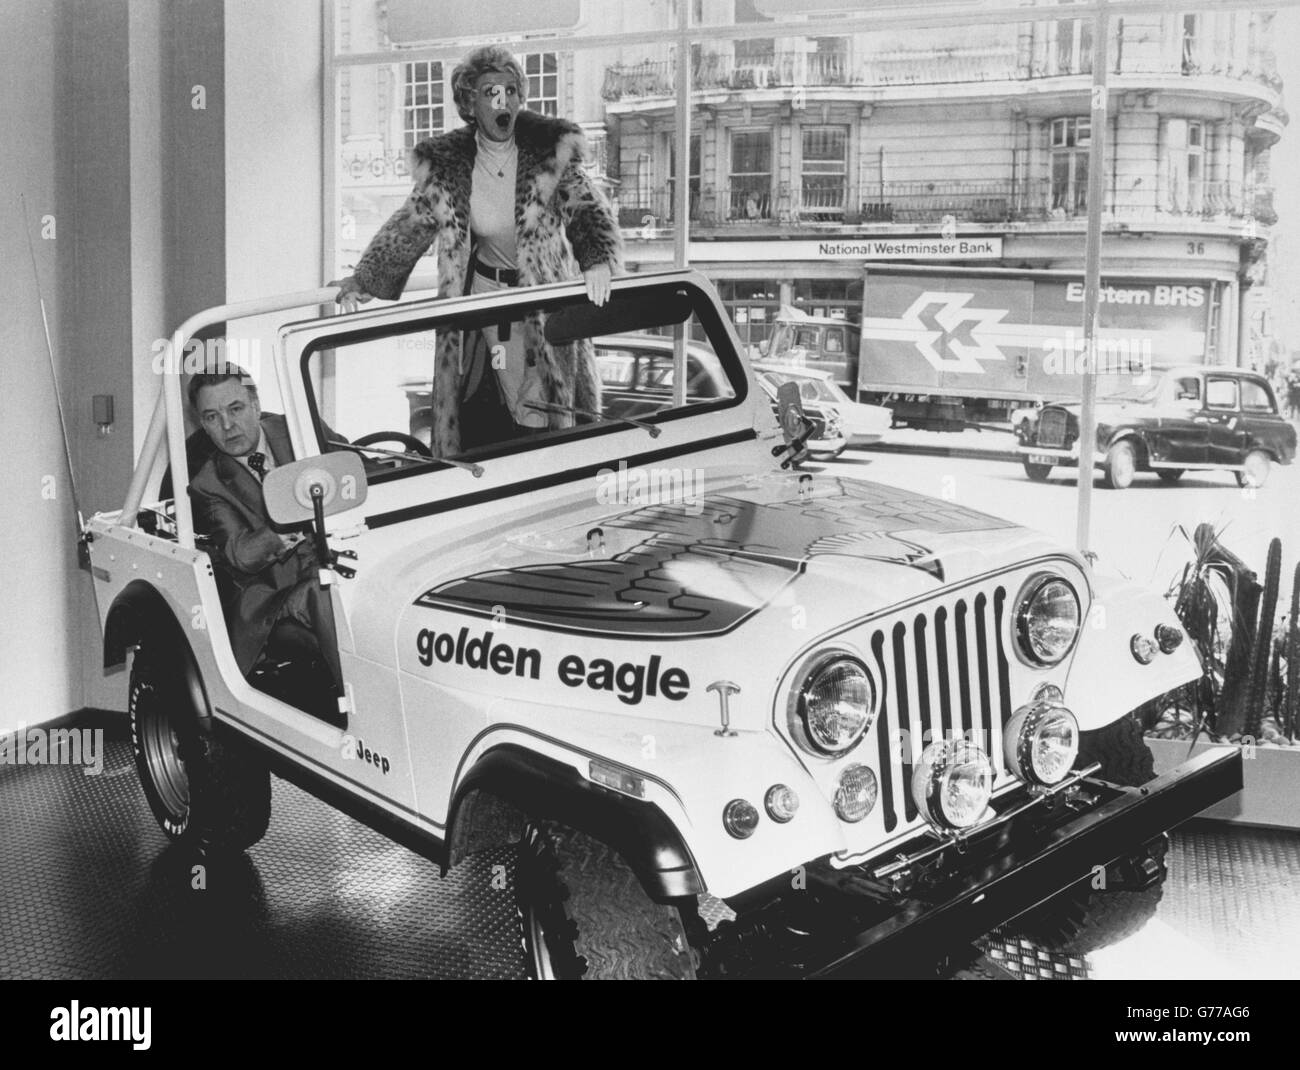 Entertainment - Jeep Showroom Opening - Elaine Stritch and Donald Sinden - London Stock Photo